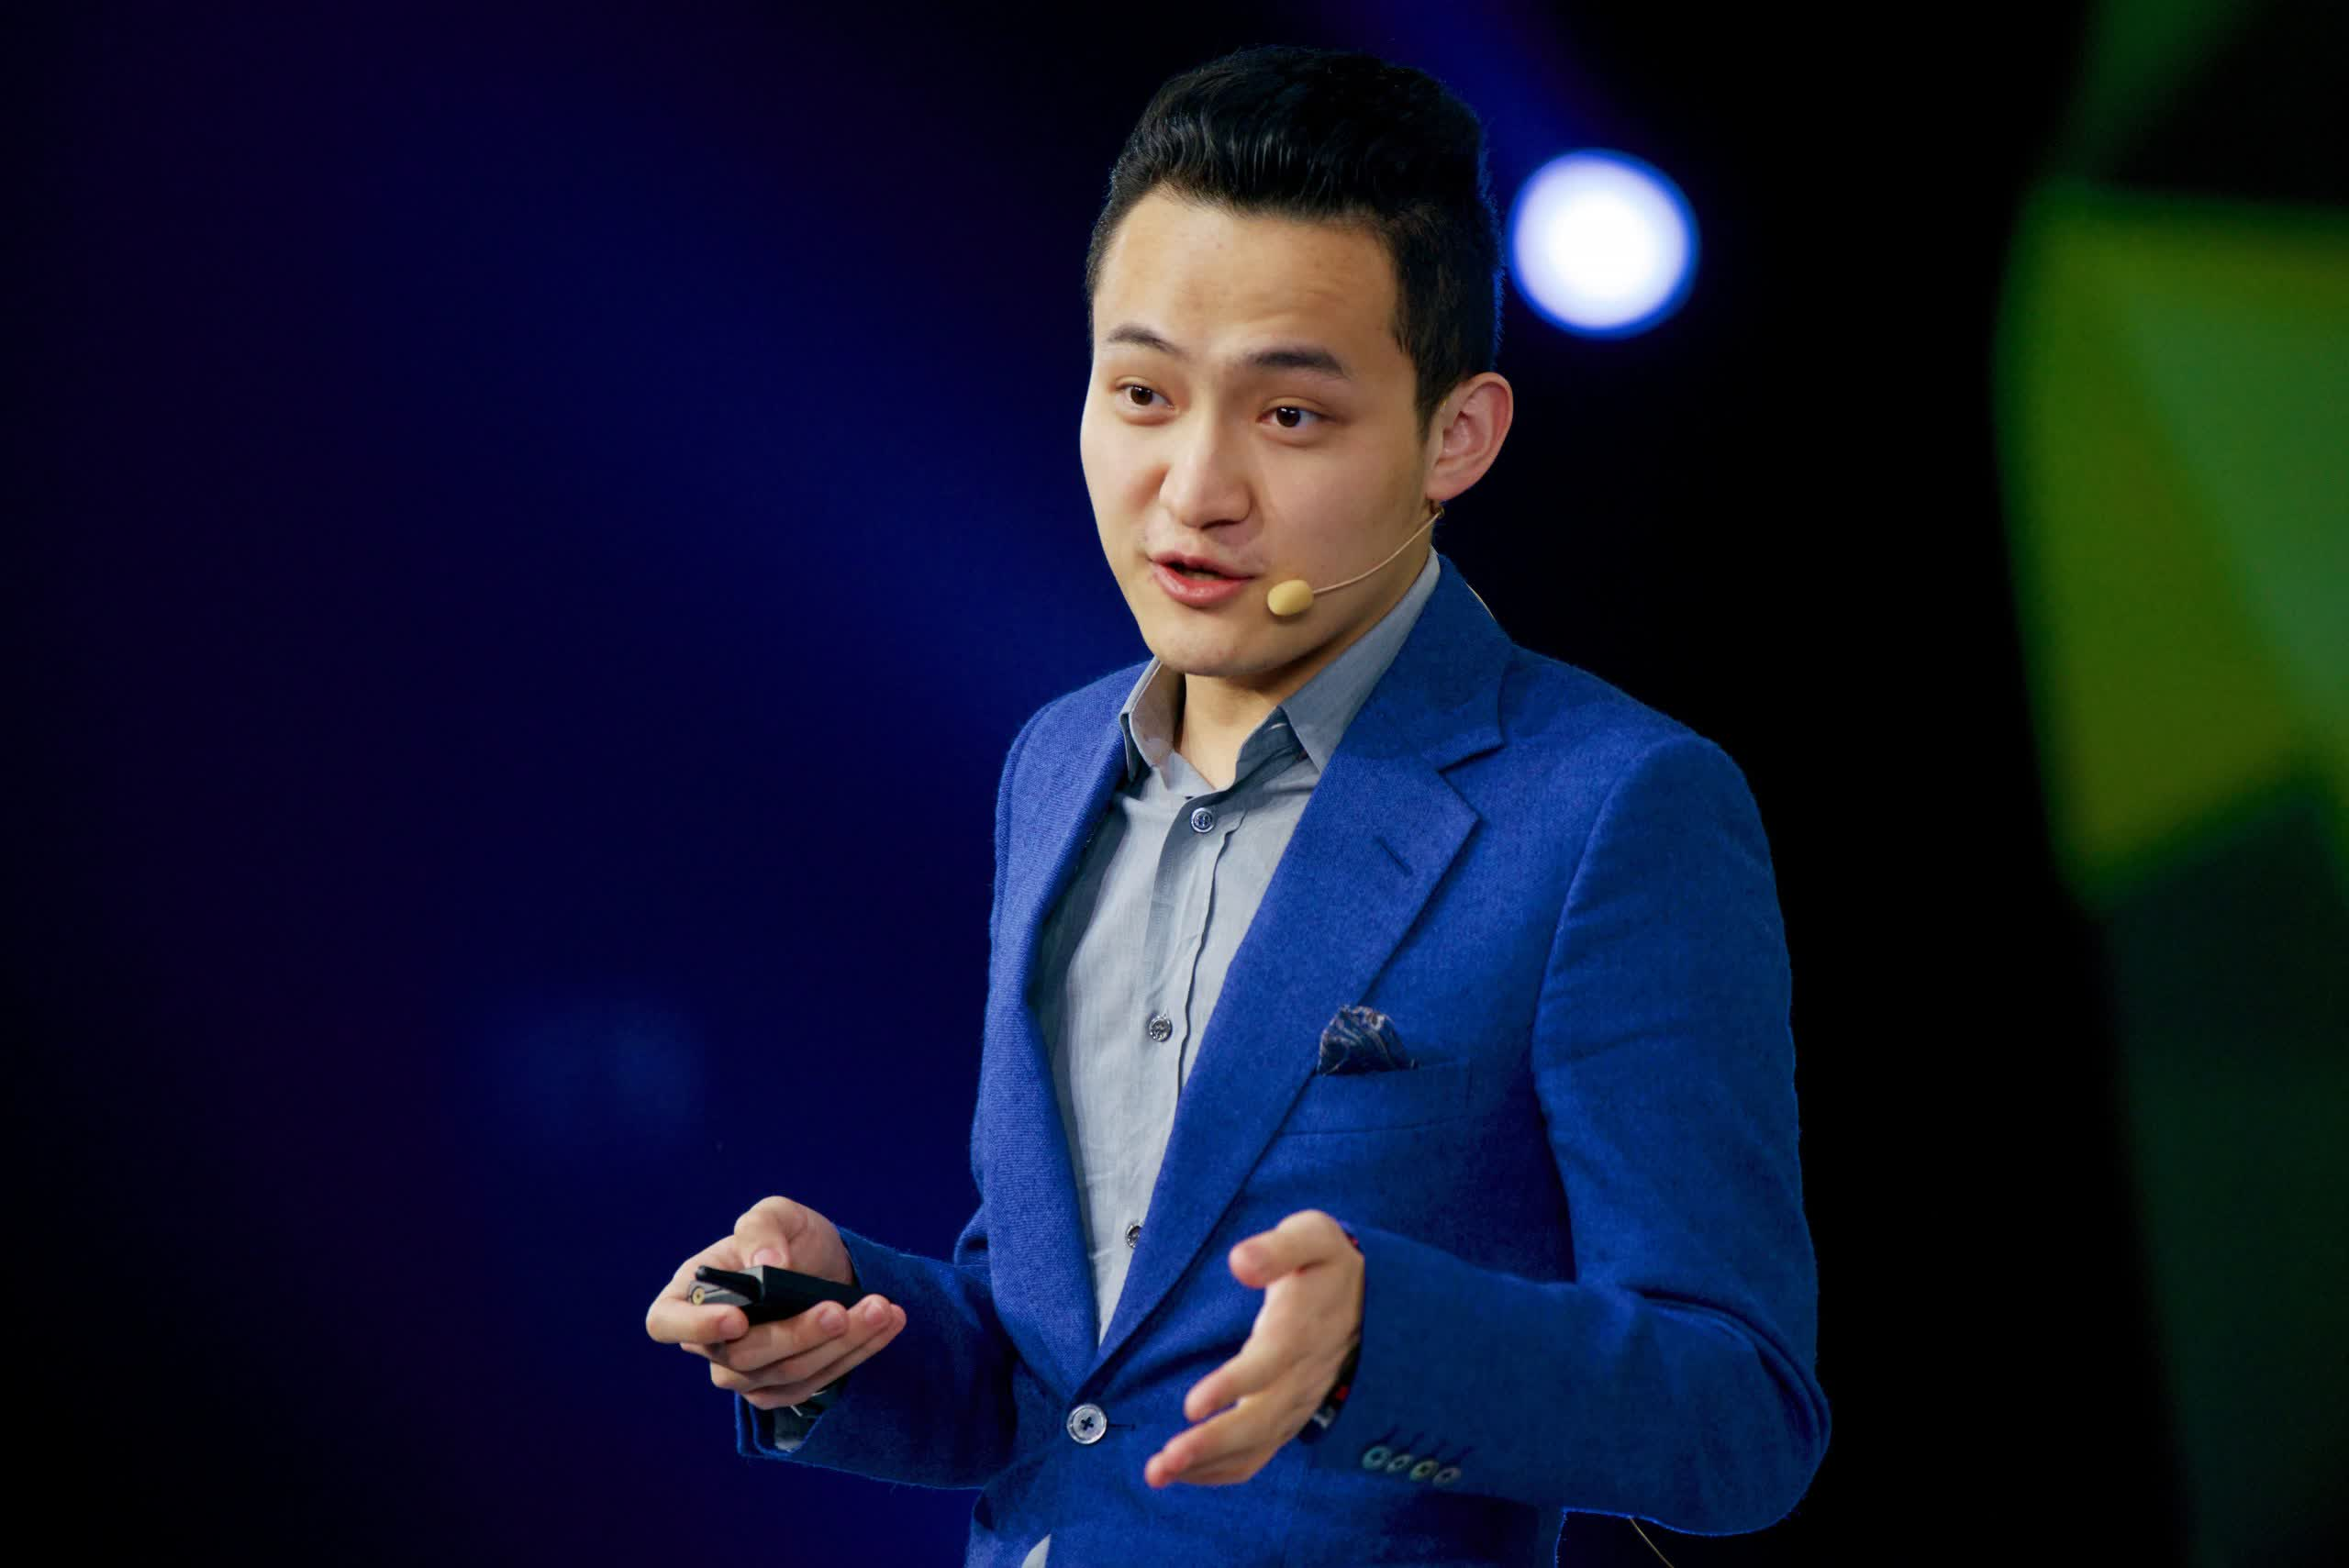 The Sun Genesis Mining token was announced by Tron Founder Justin Sun.